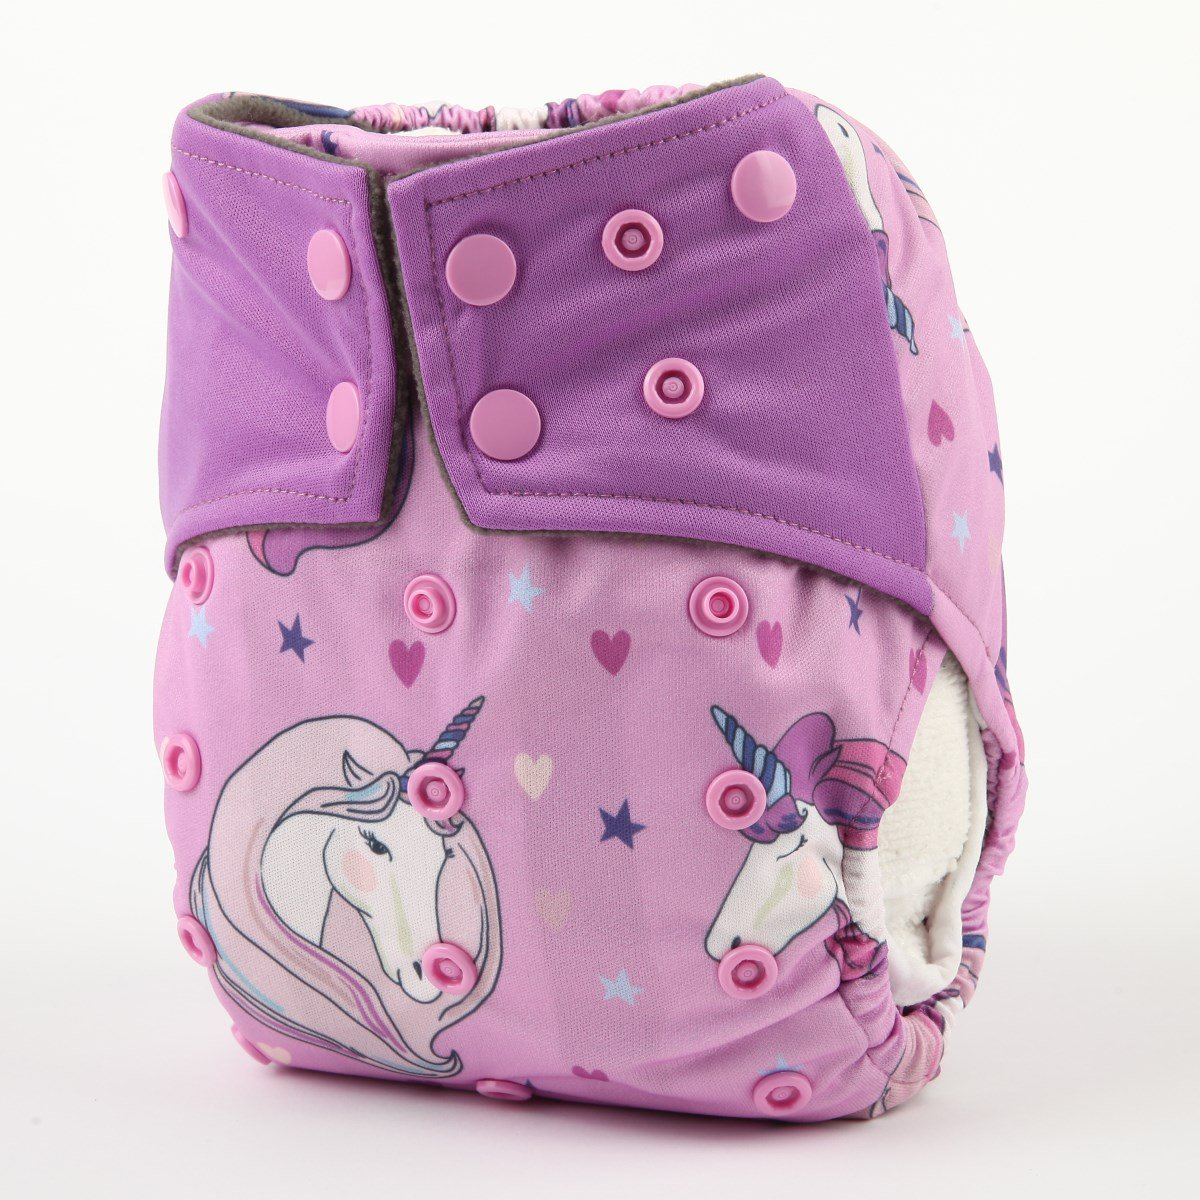 Pink Unicorn Sigzagor AIll in One Night AIO Cloth Diaper Nappy Sewn in Charcoal Bamboo Insert Reusable Washable